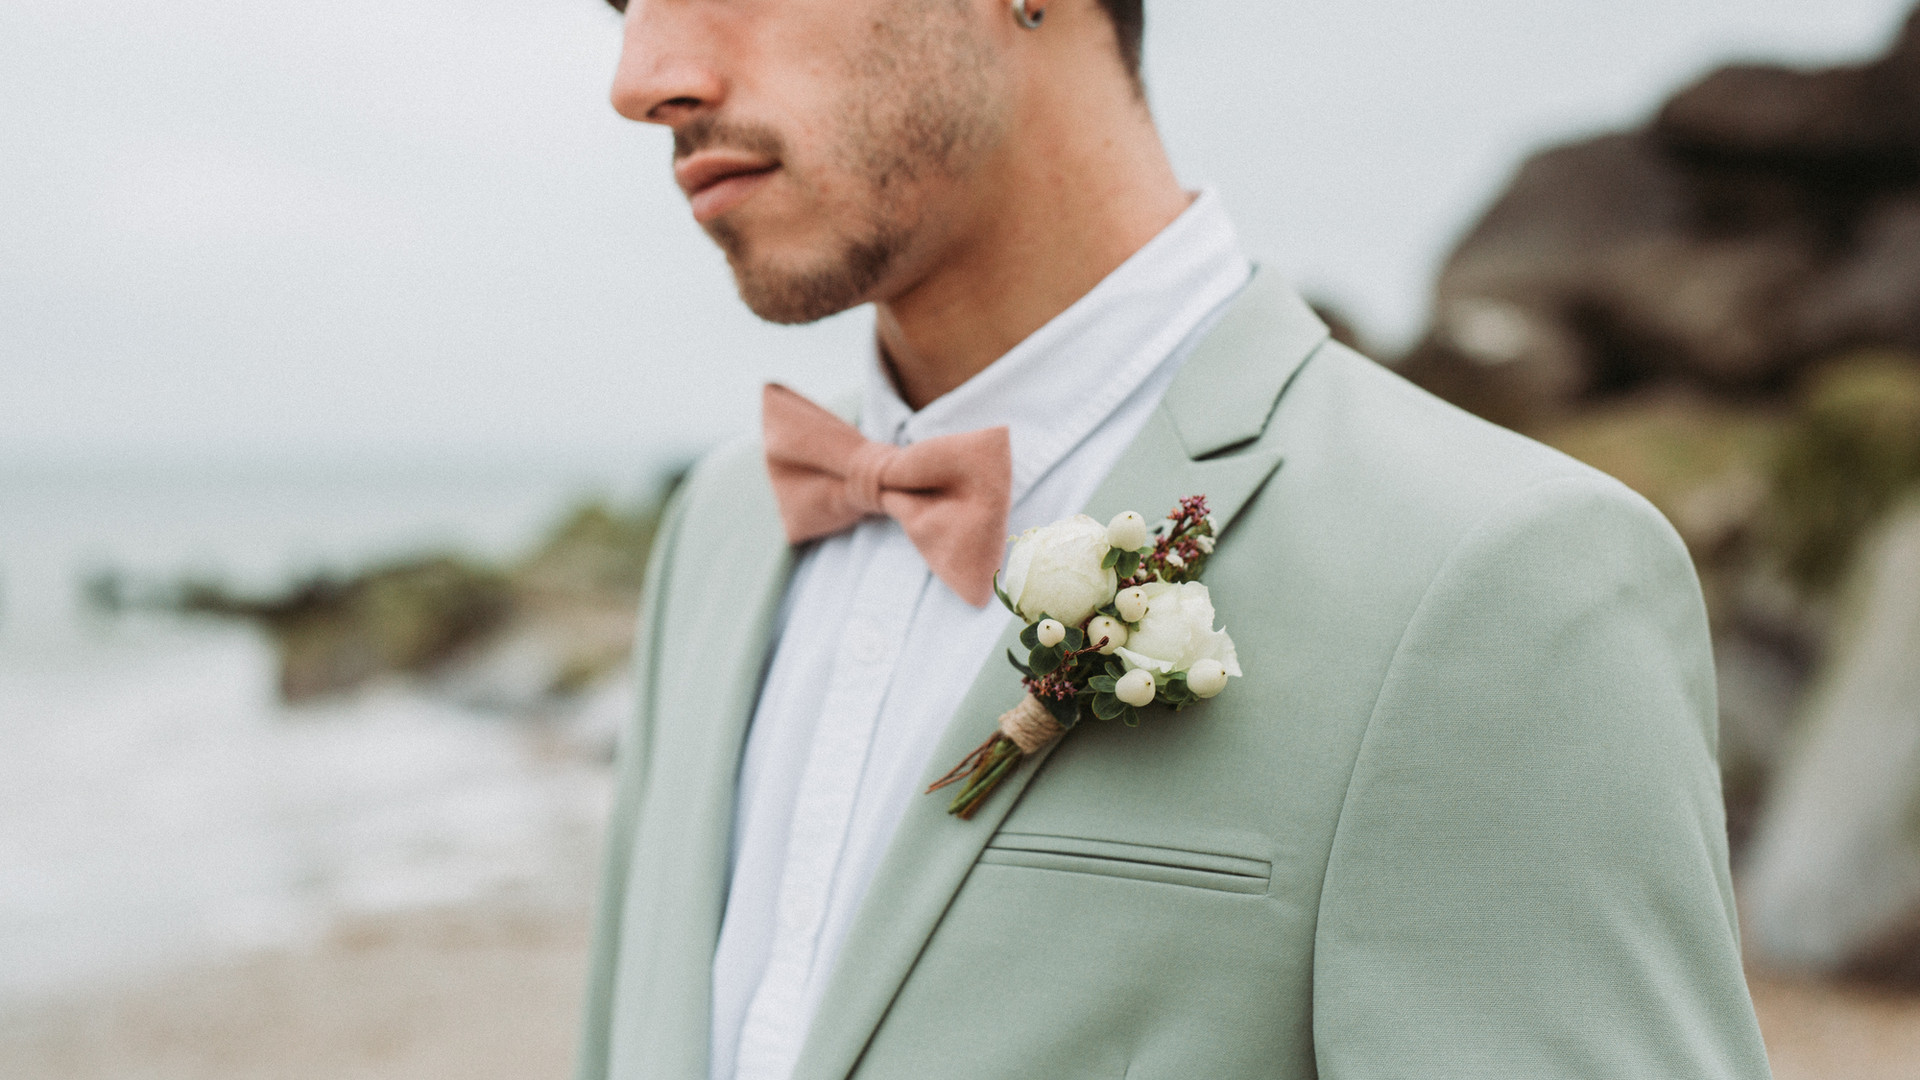 The Floral Artisan - Groom's Buttonhole